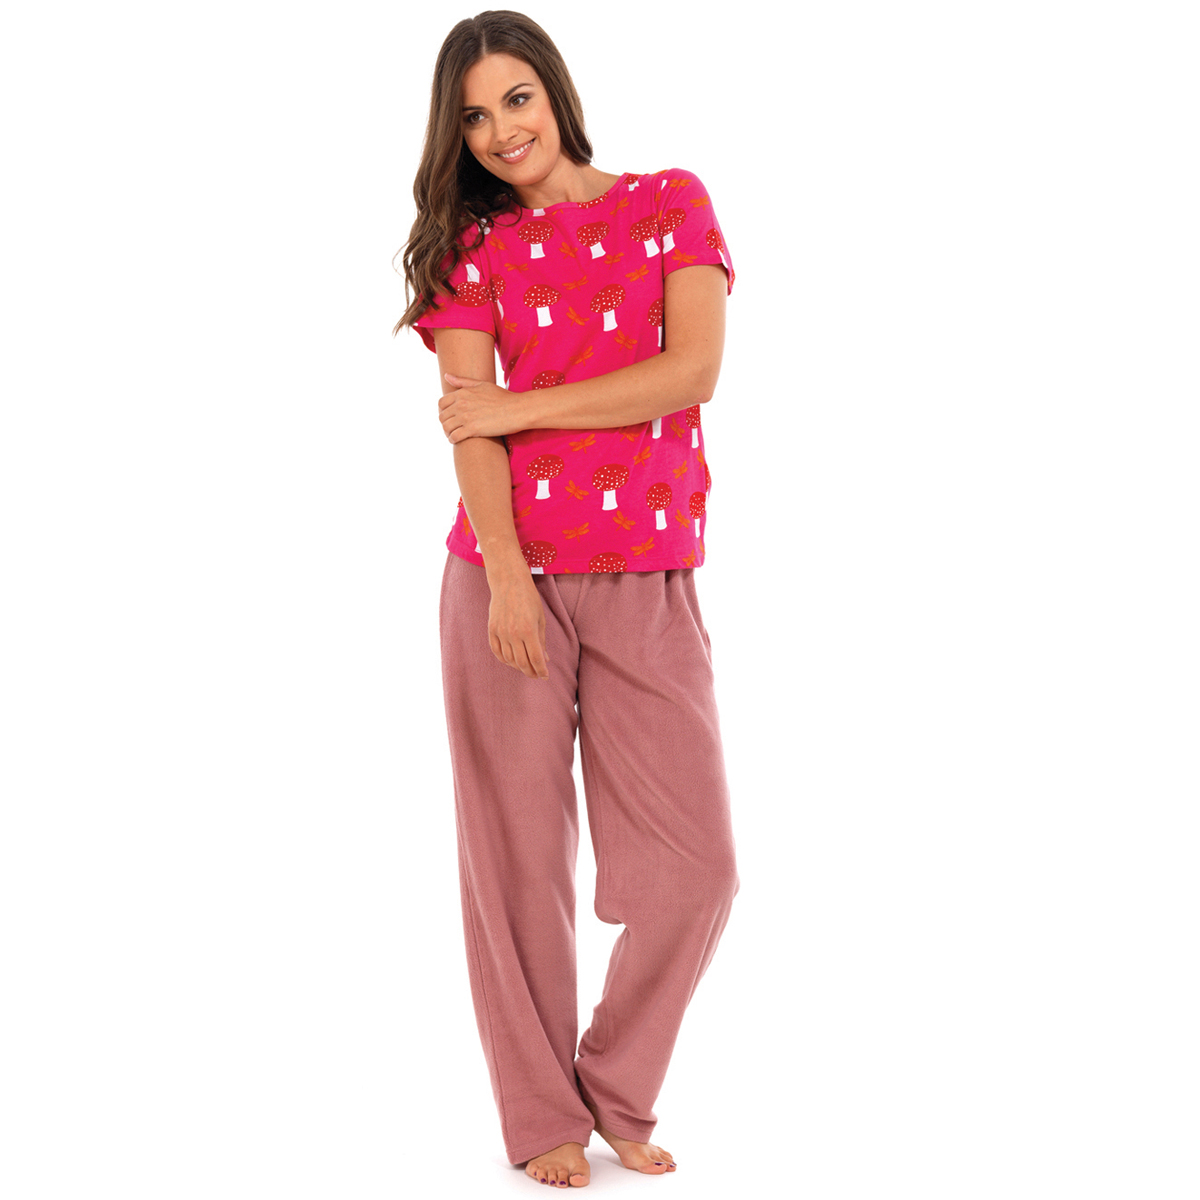 fleece pyjama set damen frauen nacht bekleidung eu 40 42 44 46 ebay. Black Bedroom Furniture Sets. Home Design Ideas